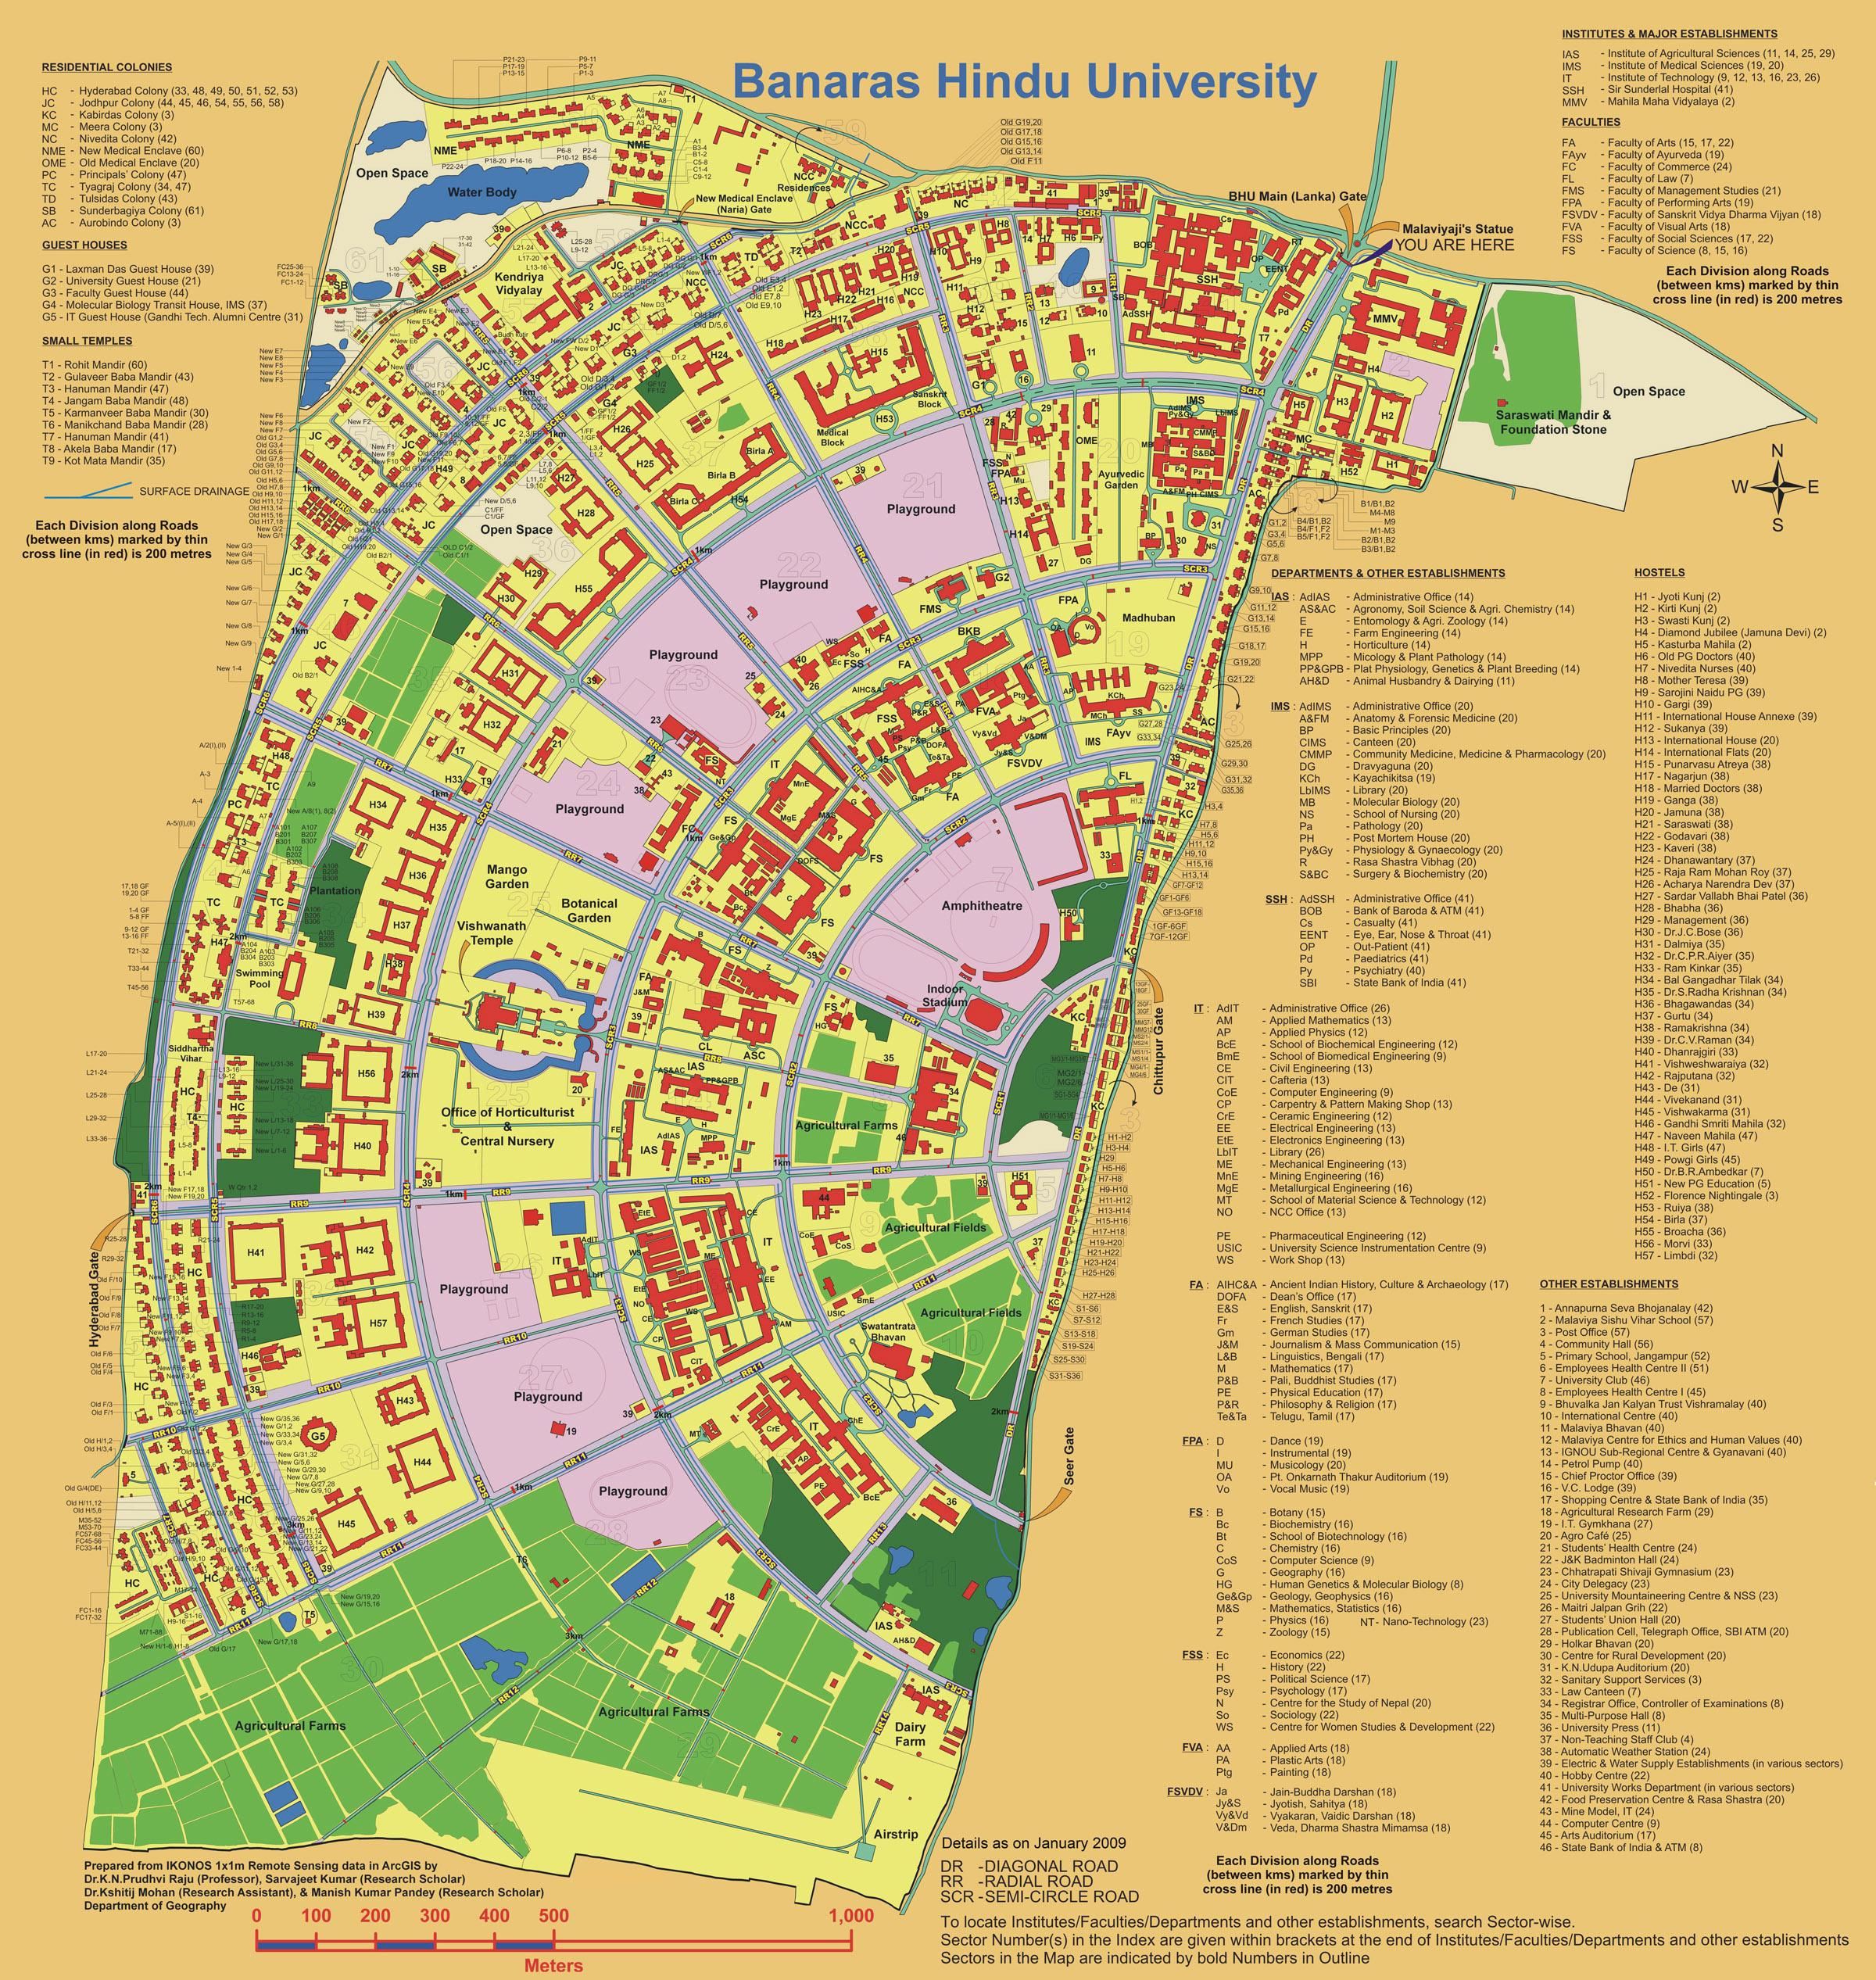 up main campus map Banaras Hindu University Varanasi up main campus map